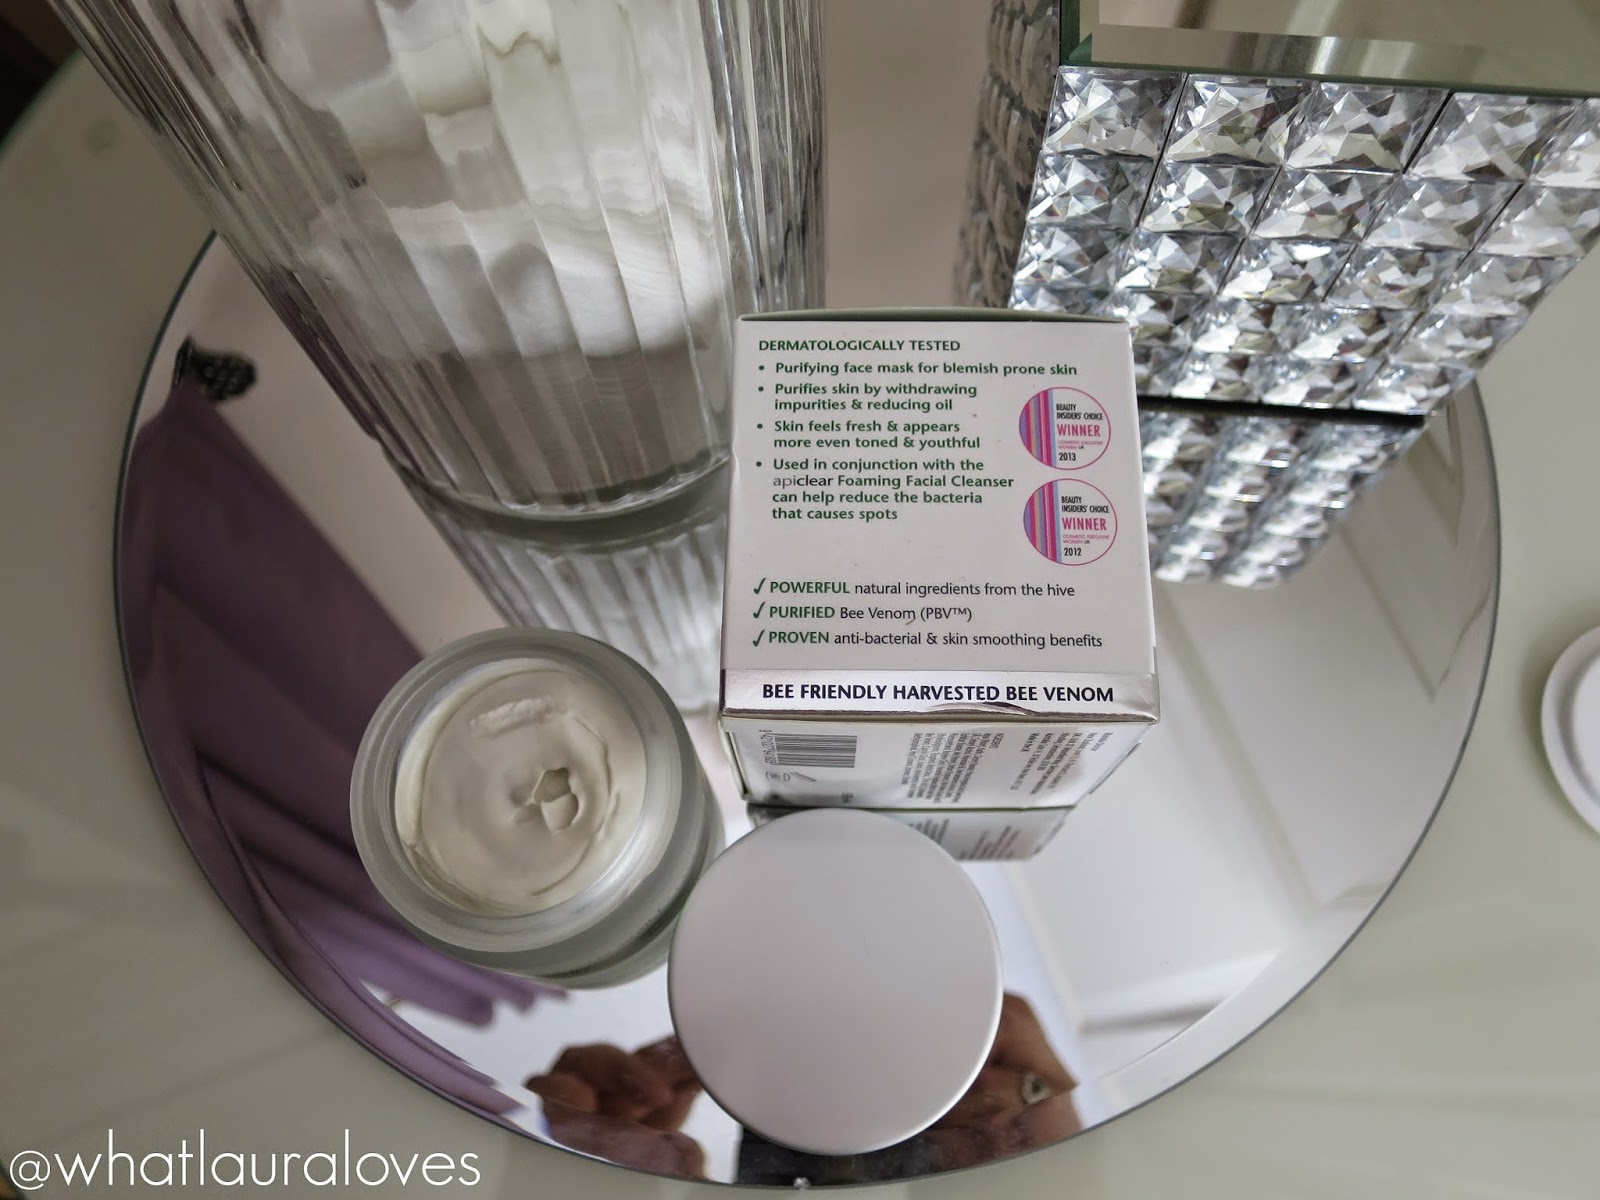 Manuka Doctor ApiClear Purifying Face Mask Review Oily Troubled Blemish Prone Skin